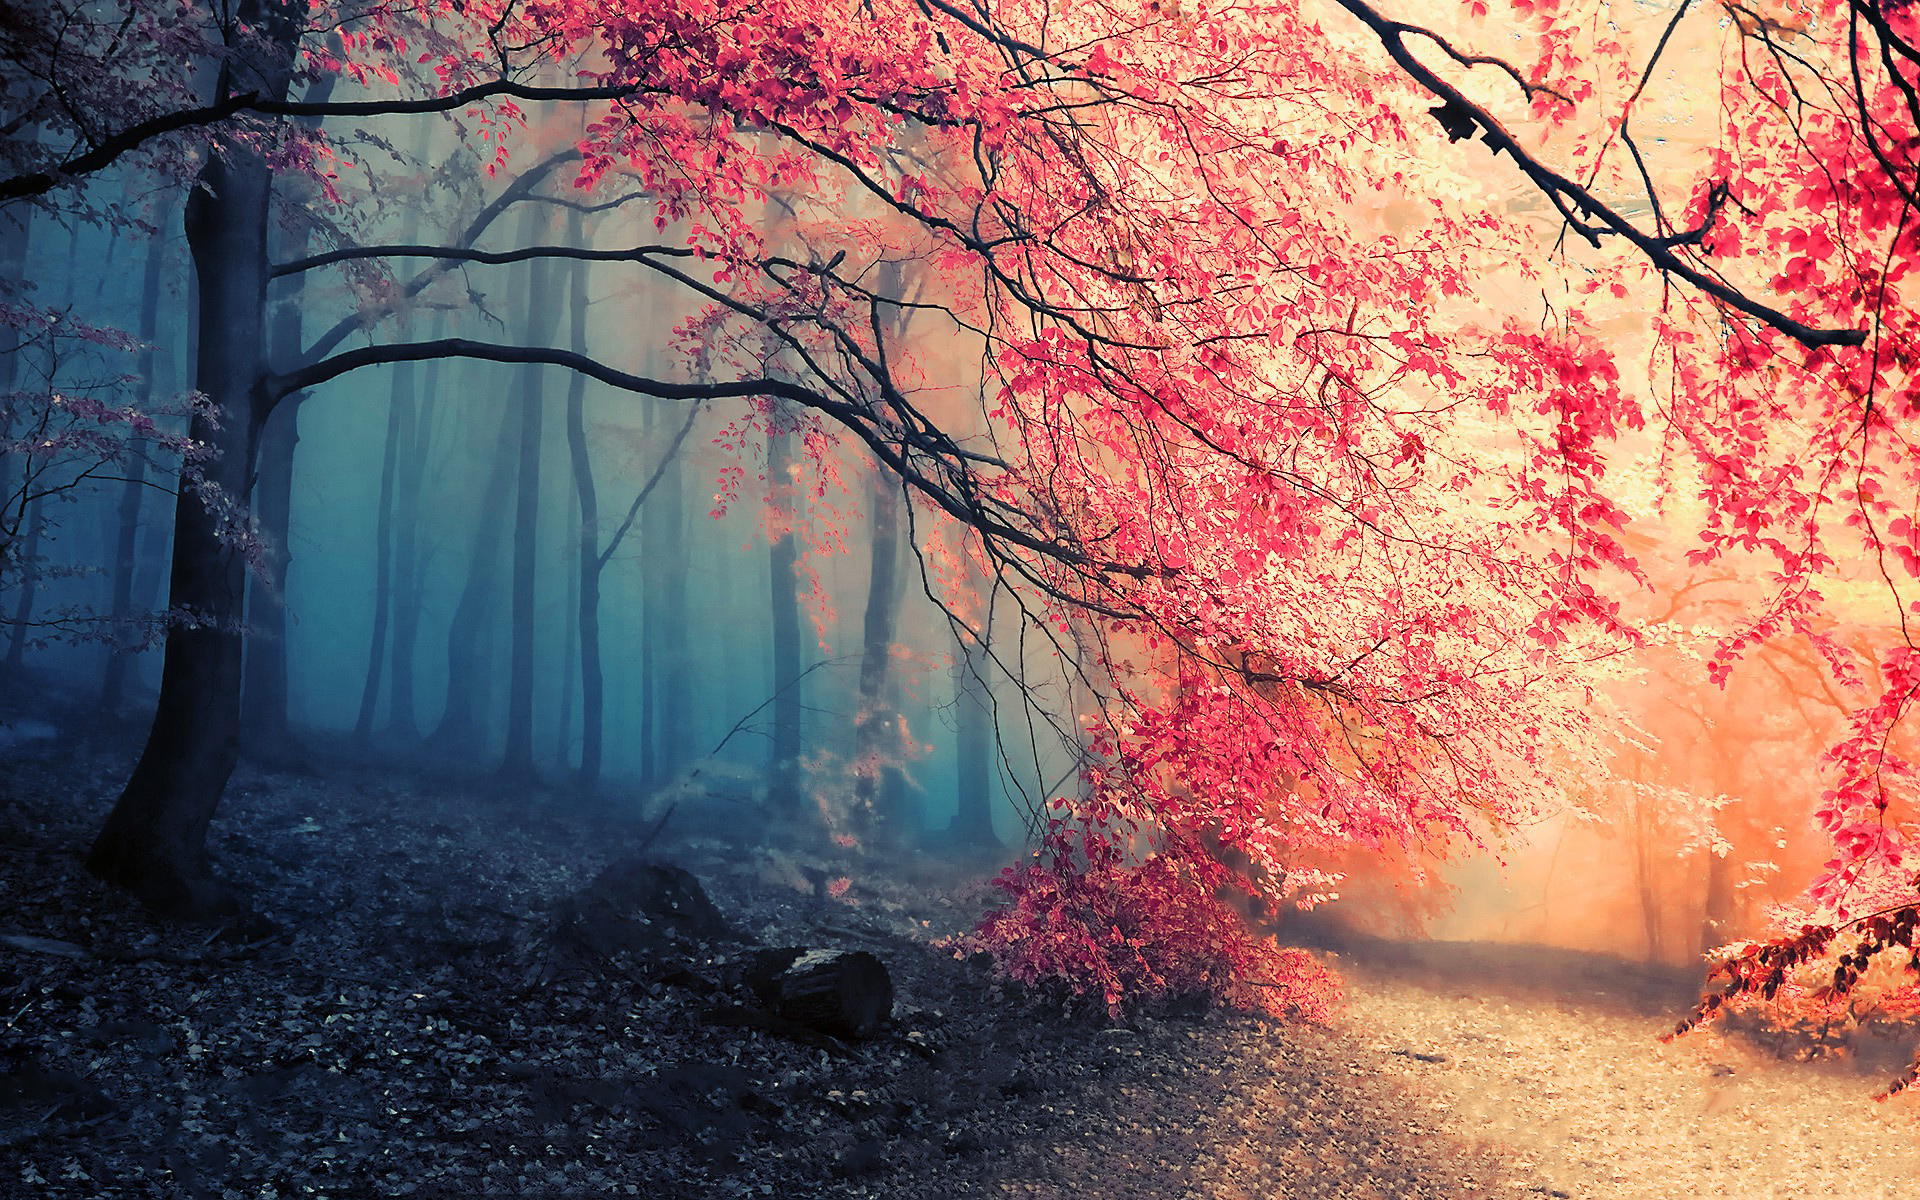 1751 forest hd wallpapers backgrounds wallpaper abyss - Decorative trees with red leaves amazing contrasts ...